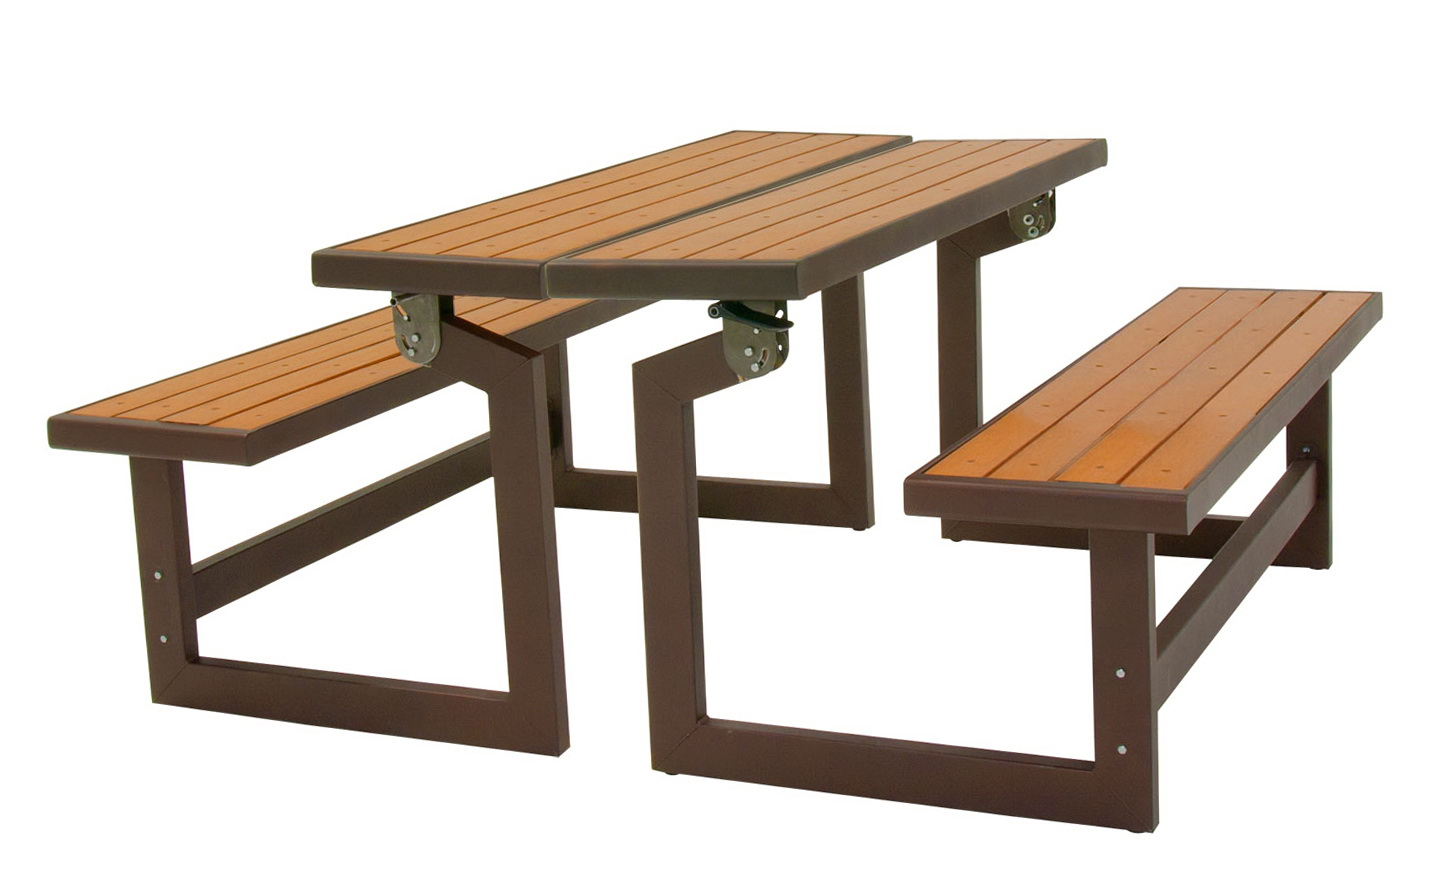 Convertible Bench Picnic Table Plans Home Design Ideas